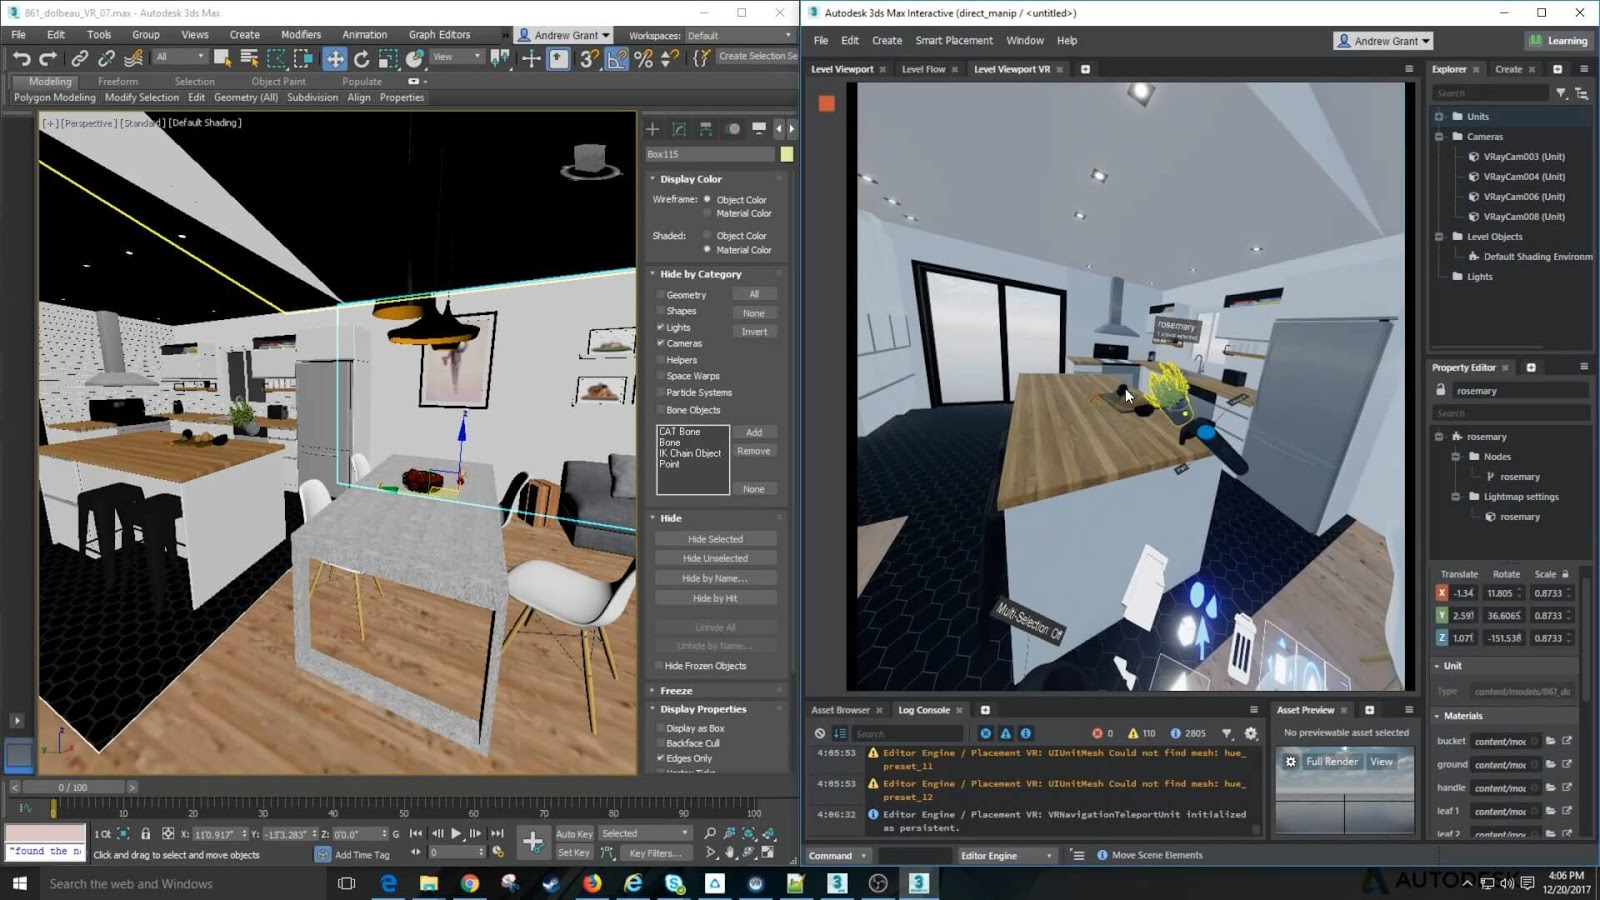 Autodesk 3ds Max 2020 Full version full crack and keygen